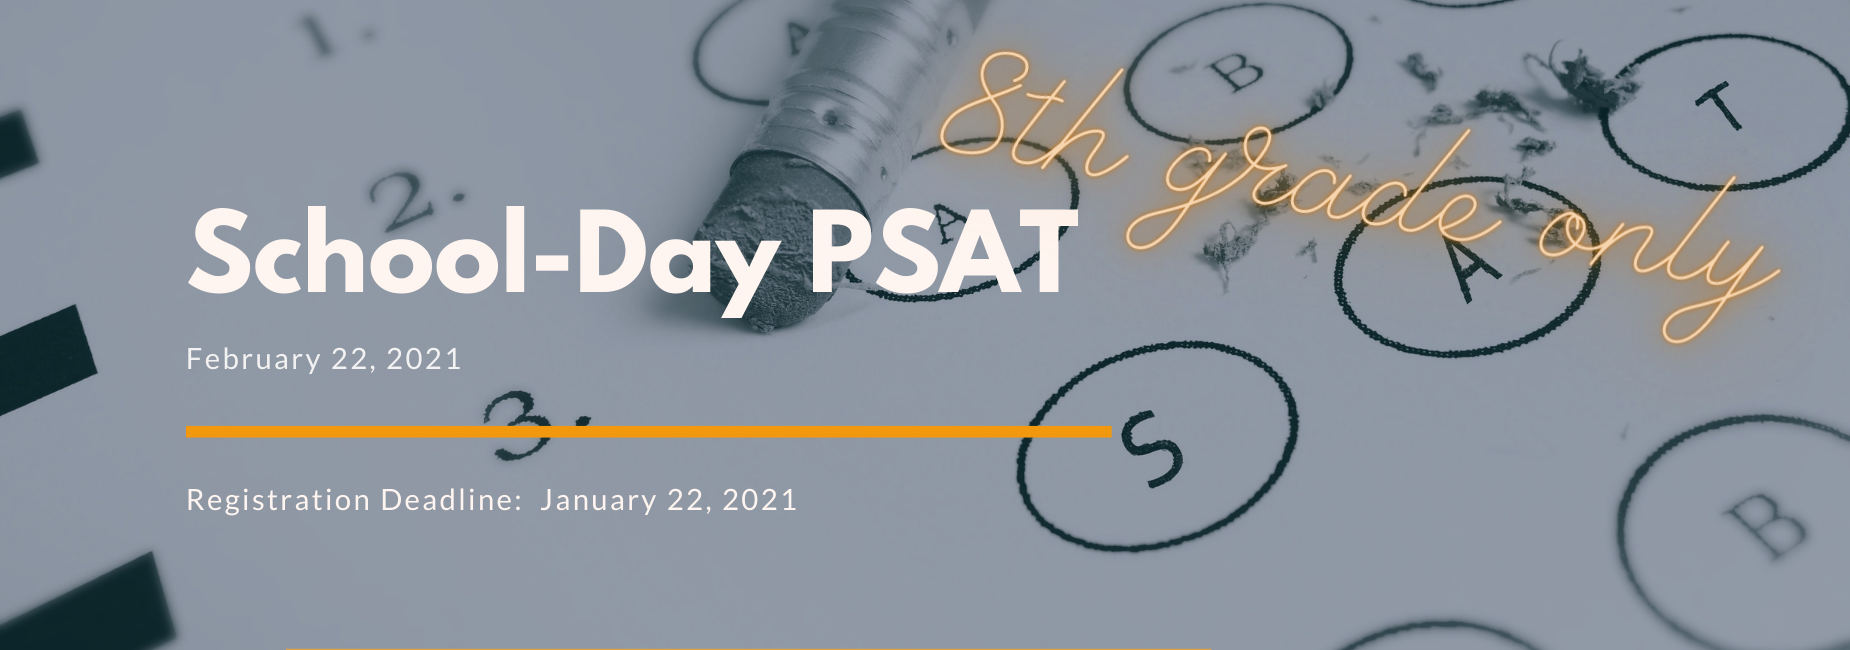 graphic describing the school day psat for 8th graders on February 22